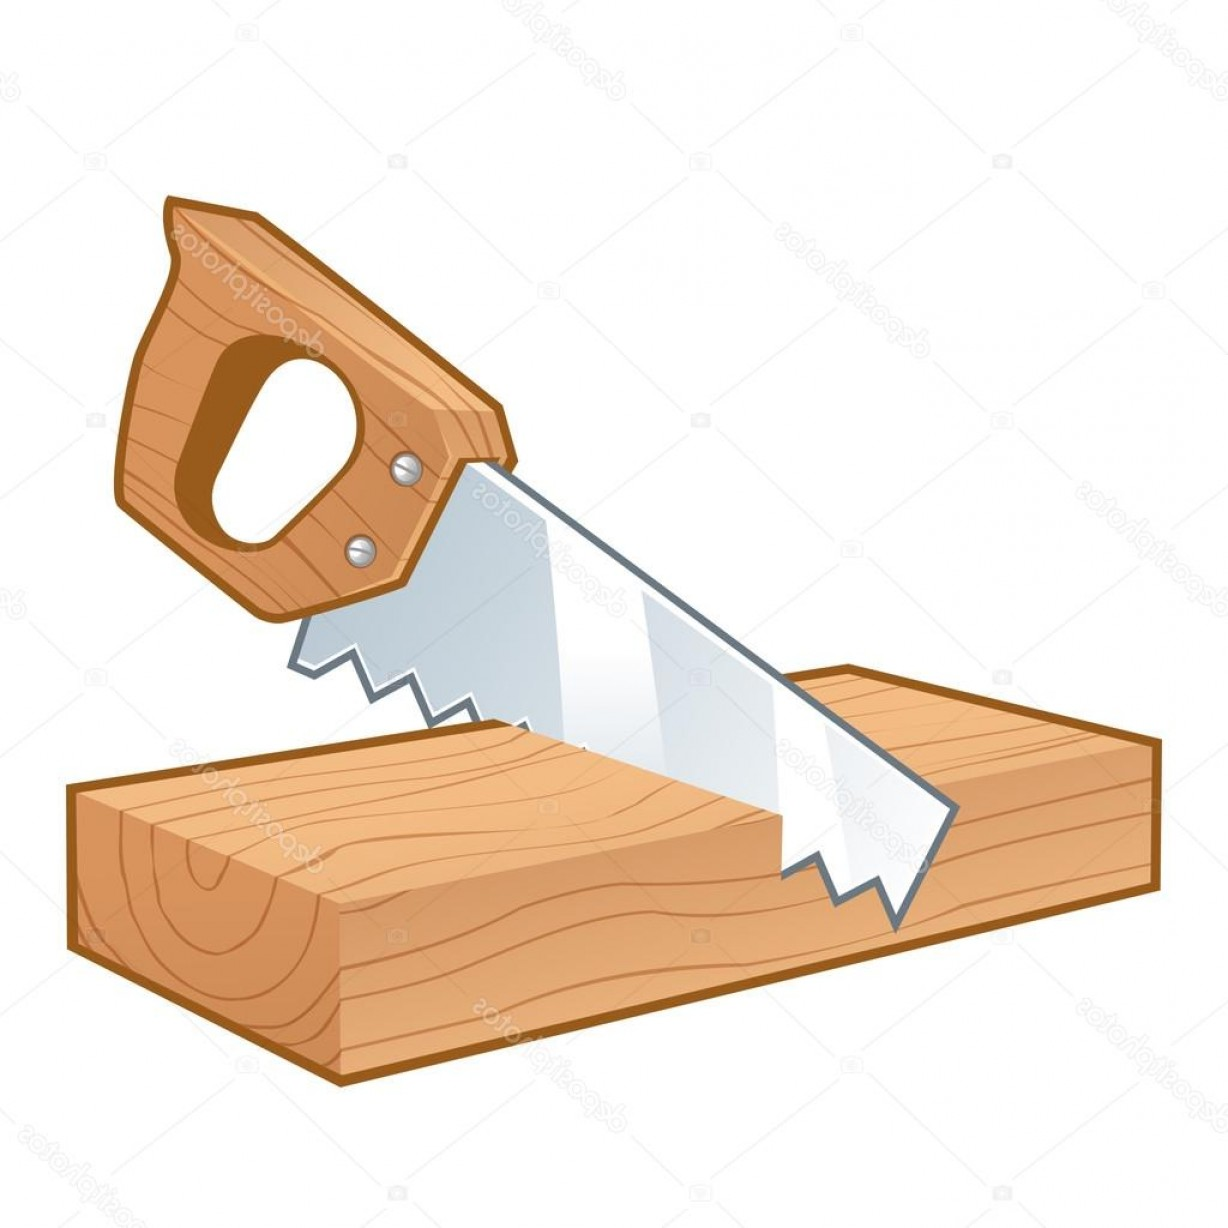 Wood Cutting Vector: Stock Illustration Saw Cutting A Piece Of